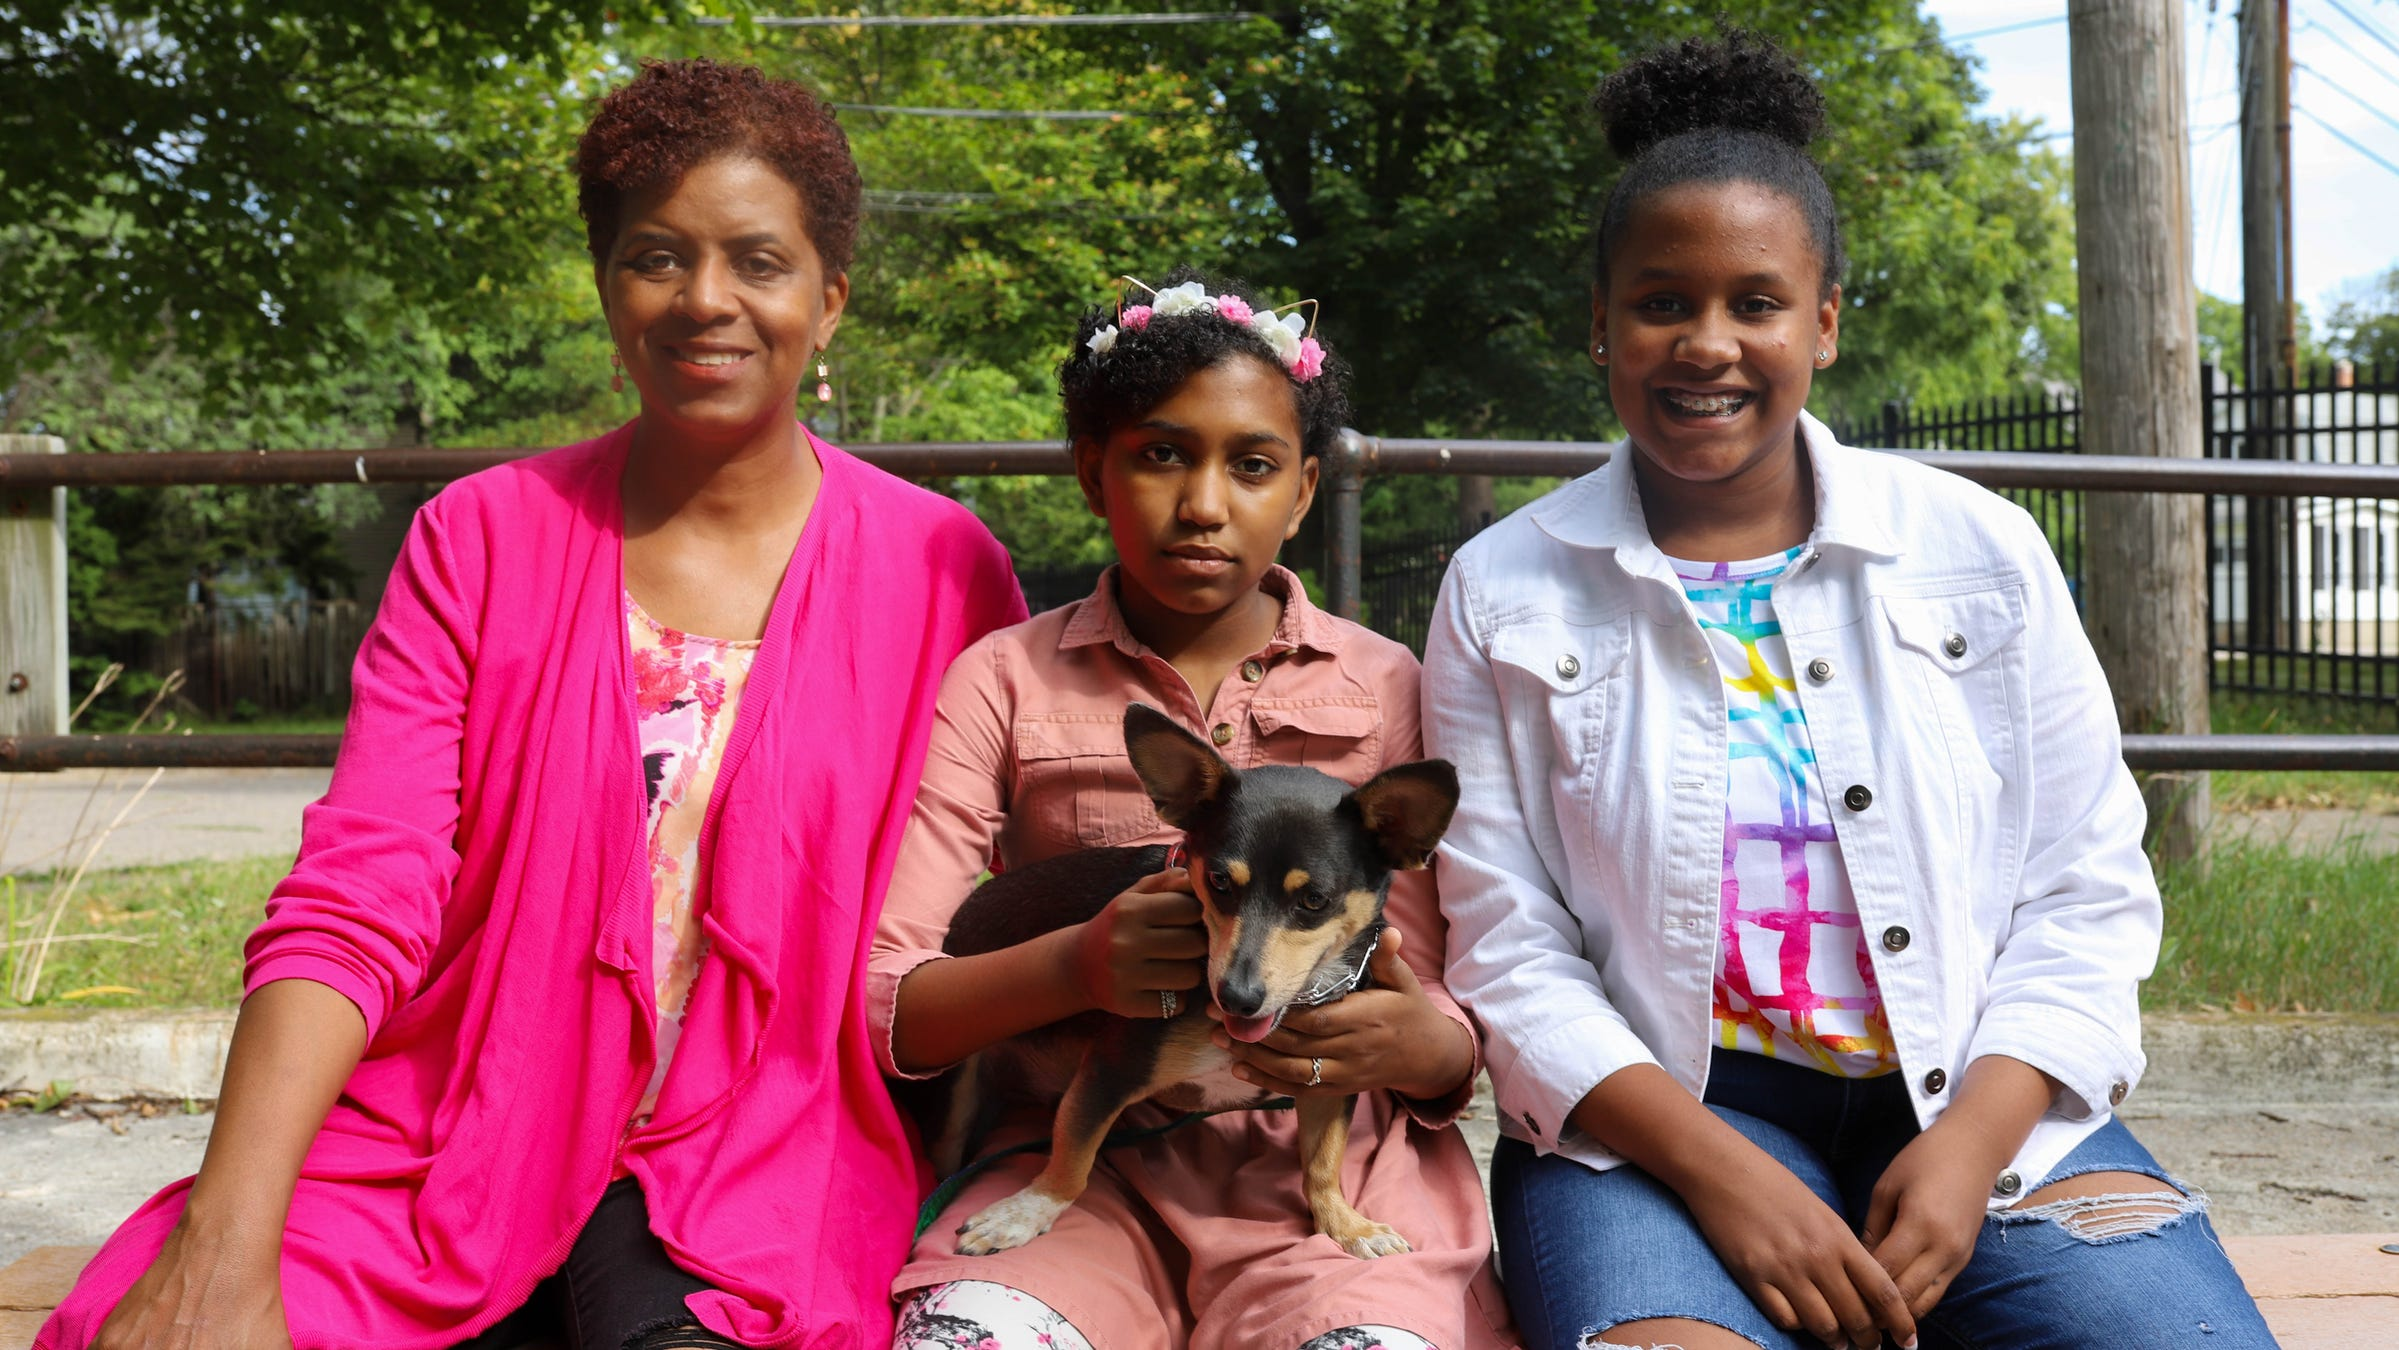 Charlotte Matthews with her daughters Madison Matthews and Chloe Matthews along with their family dog Kynng Matthews at Moores Park on September 3, 2021. Madison has Sickle Cell Disease and uses CBD and THC products to treat her symptoms.